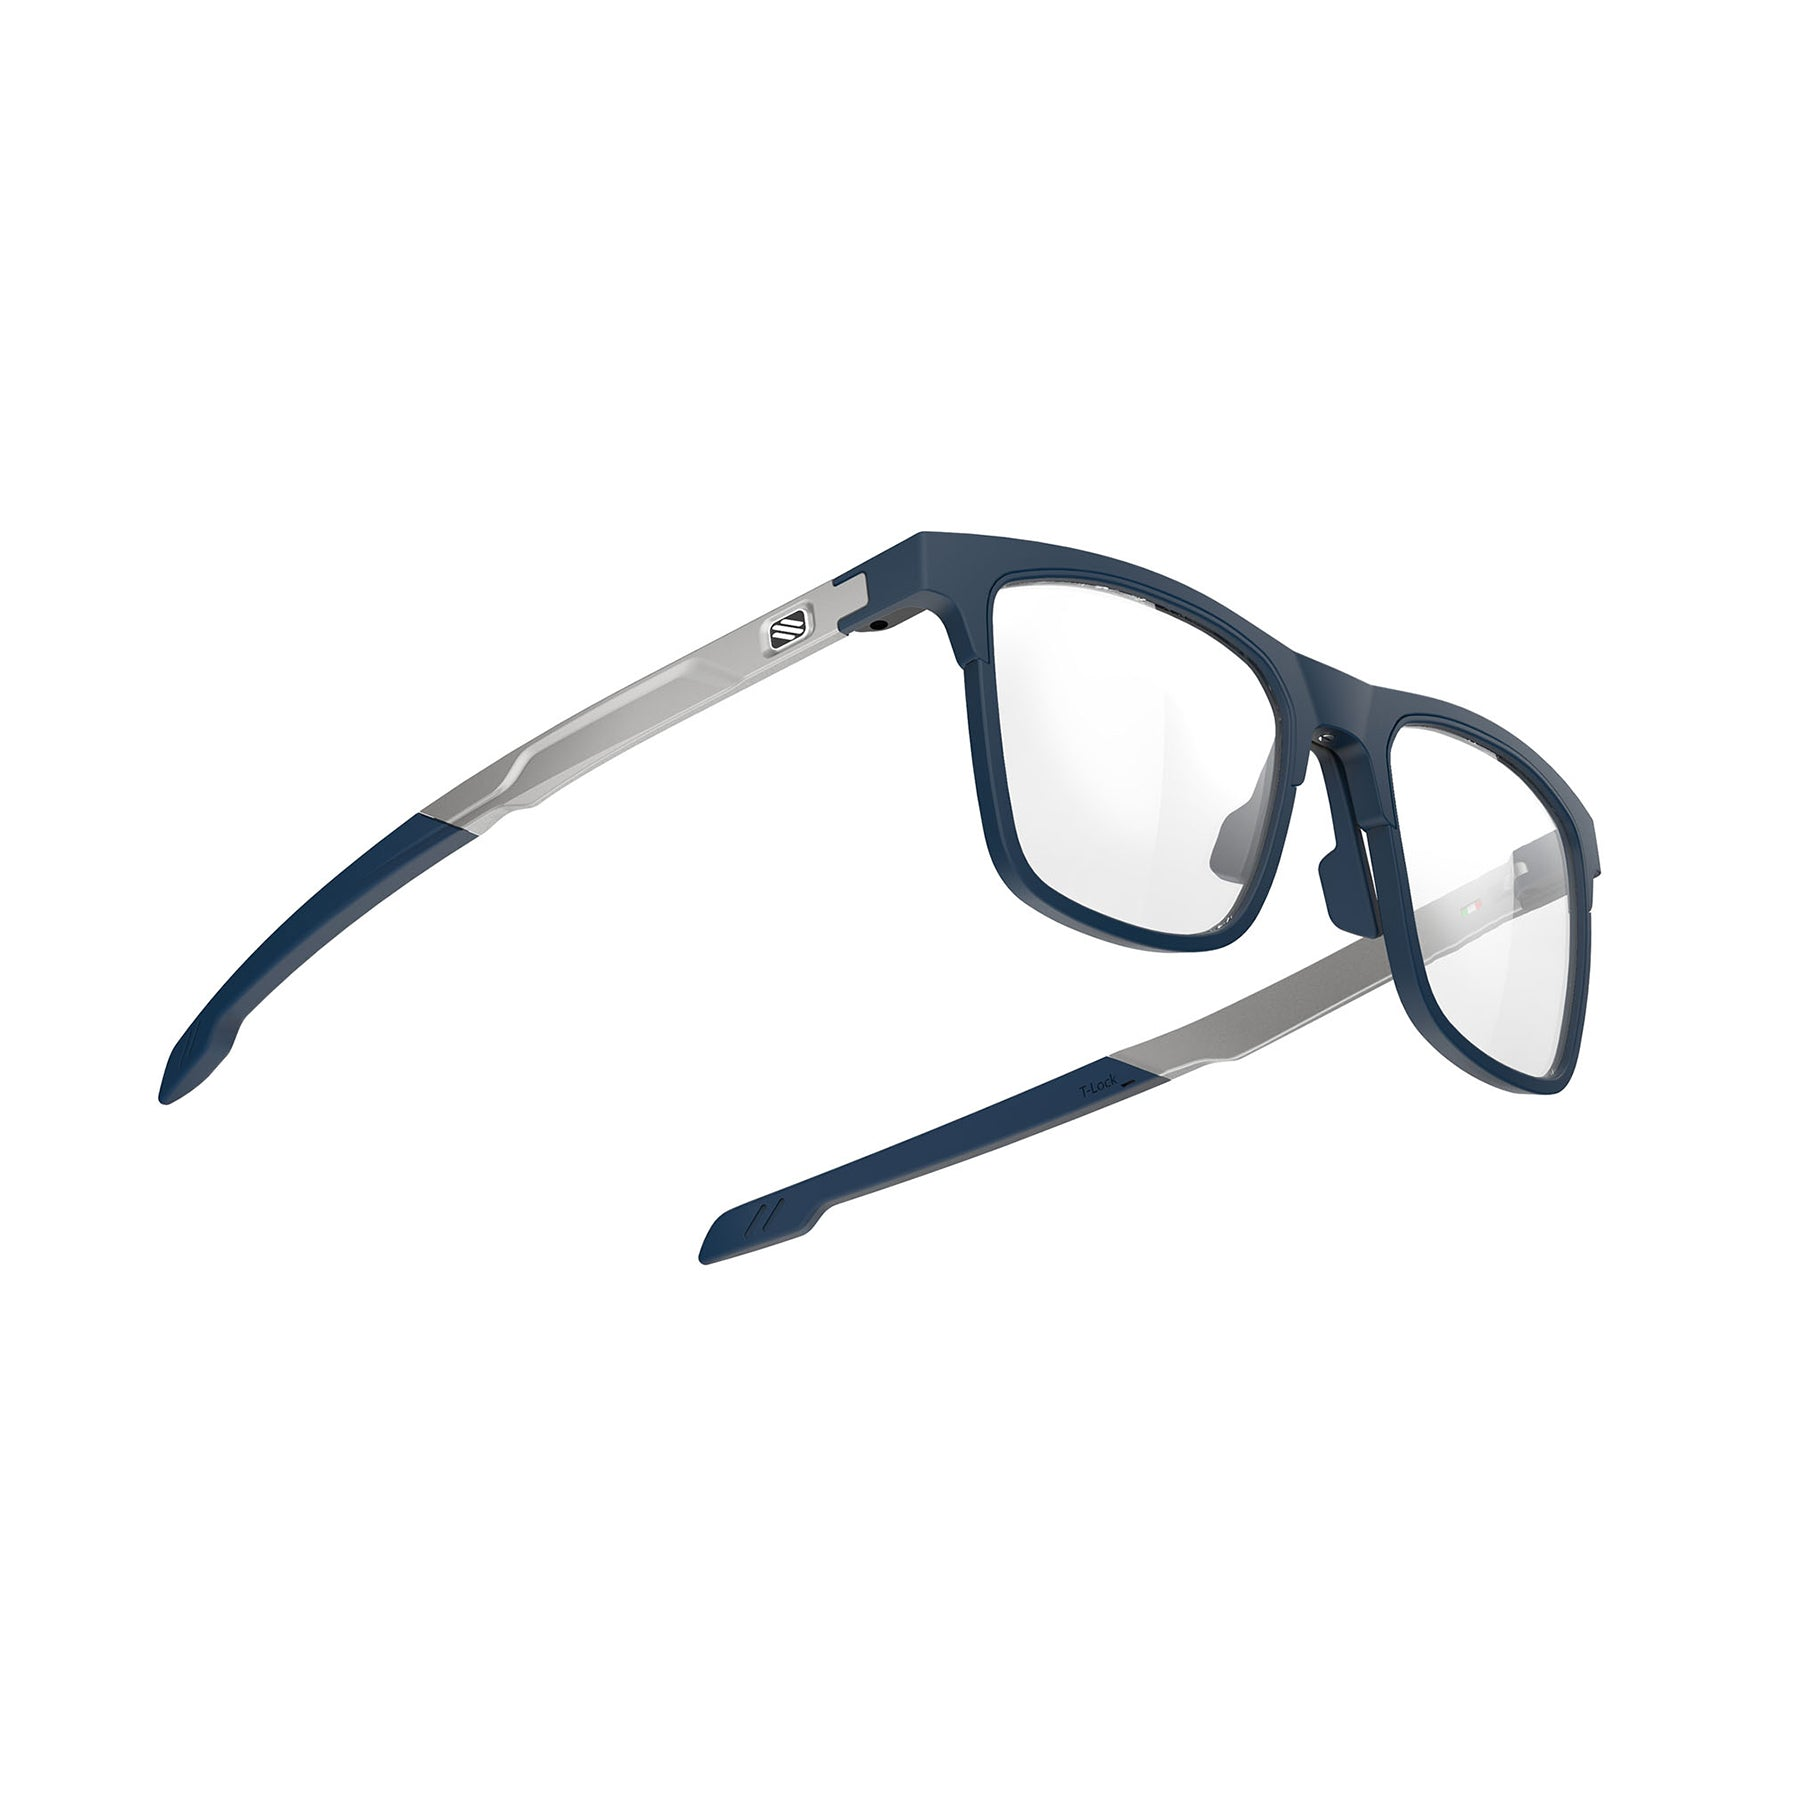 Rudy Project - Inkas XL - frame color: Blue Navy - lens color: Full Rim - photo angle: Bottom Front Angle Variant Hover Image